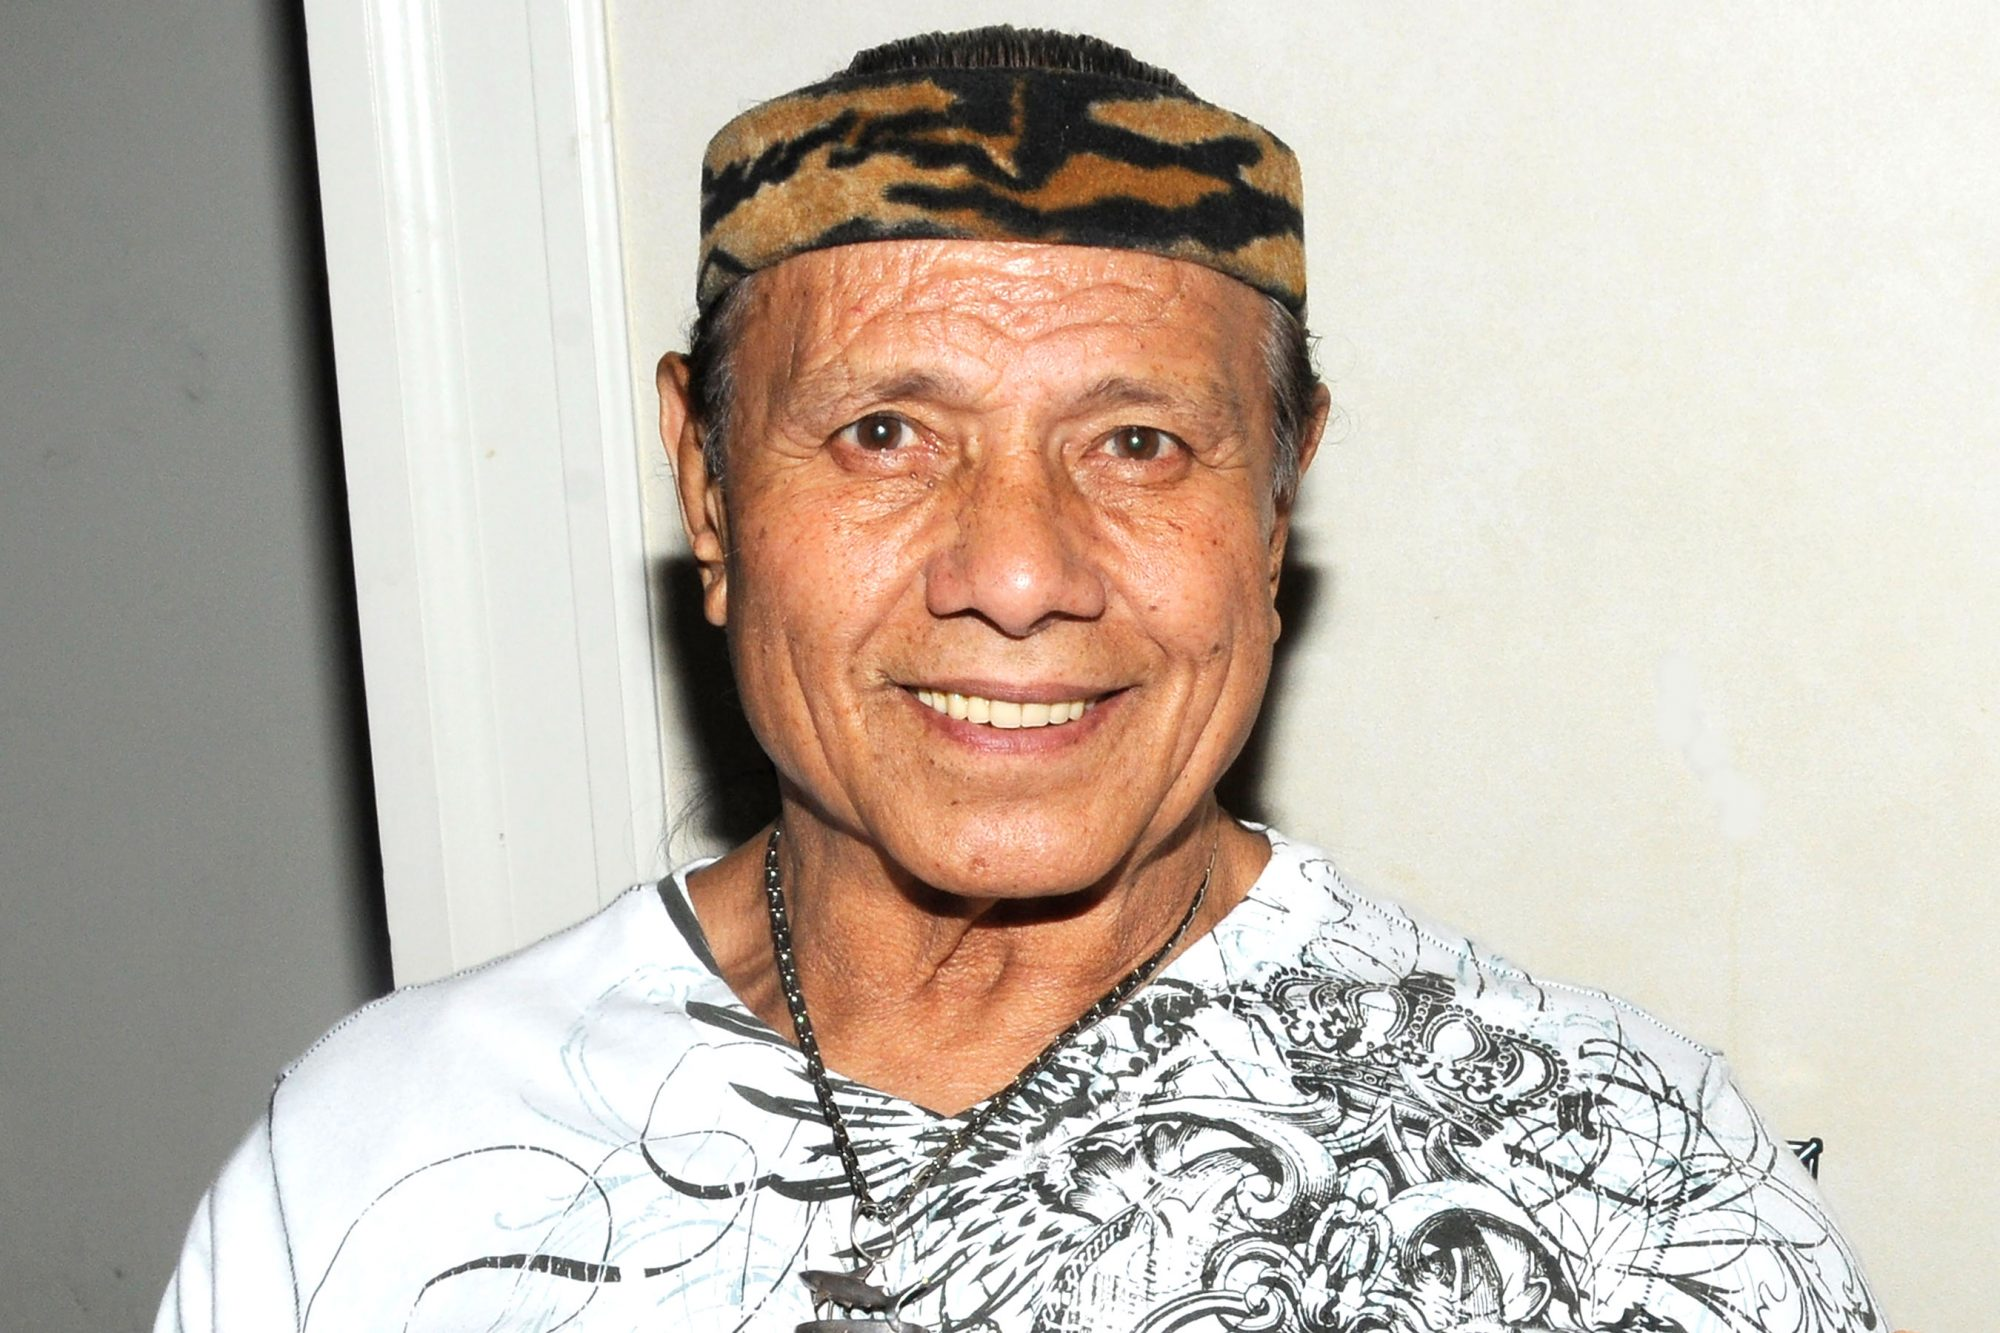 Superfly Jimmy Snuka charged in 1983 Murder